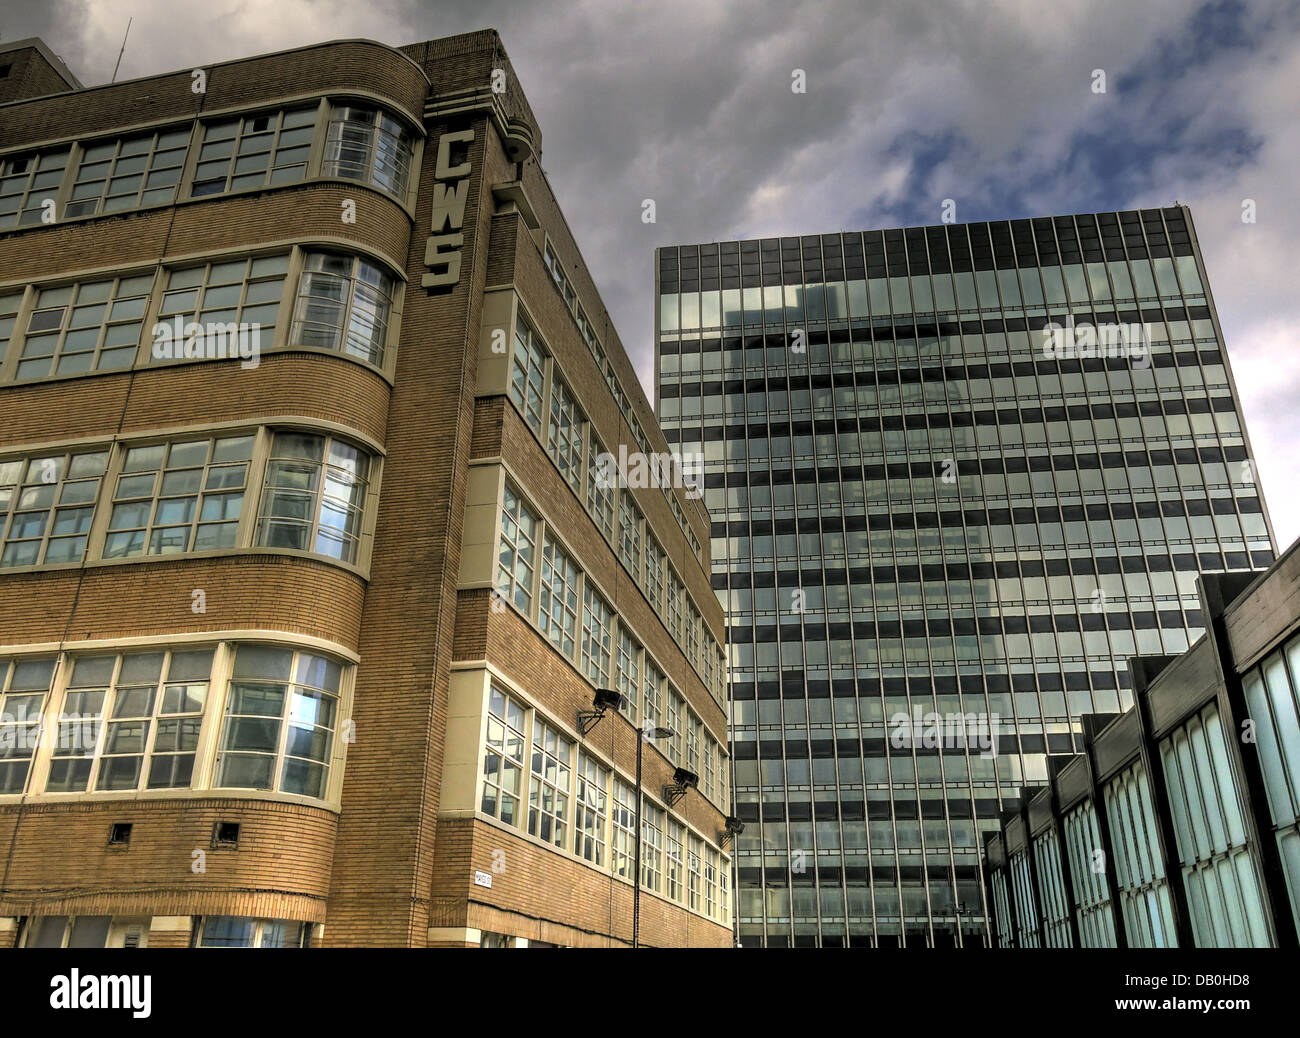 CIS and New Century House Cooperative Wholesale Society buildings, Manchester , North West England, UK - Stock Image